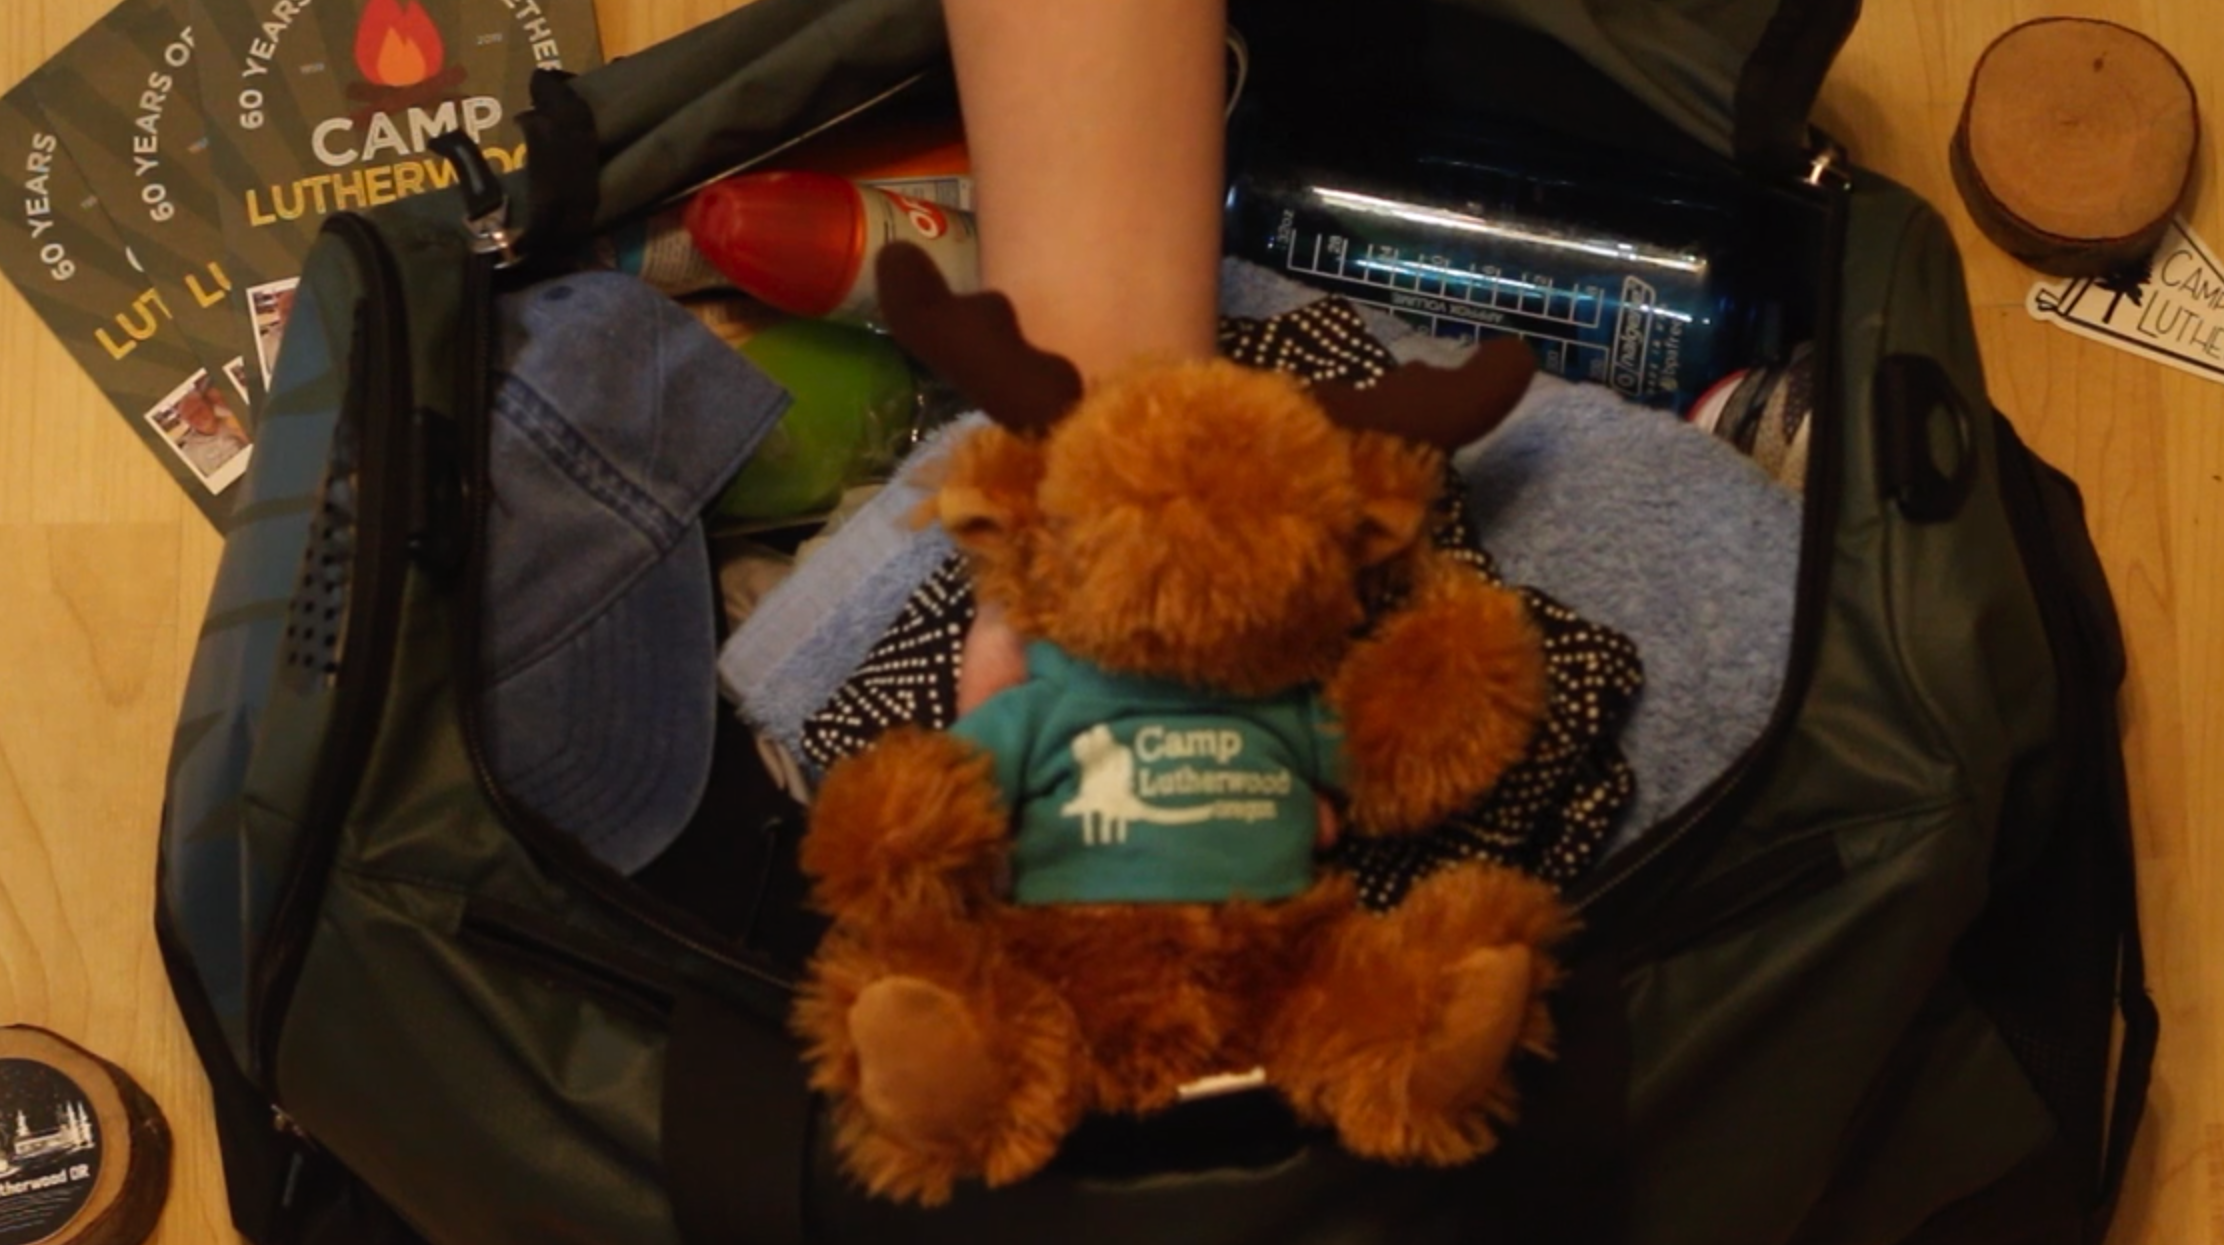 A duffle bag is packed with clothes and other items as a hand holds out a Milo the Moose stuffed animal.